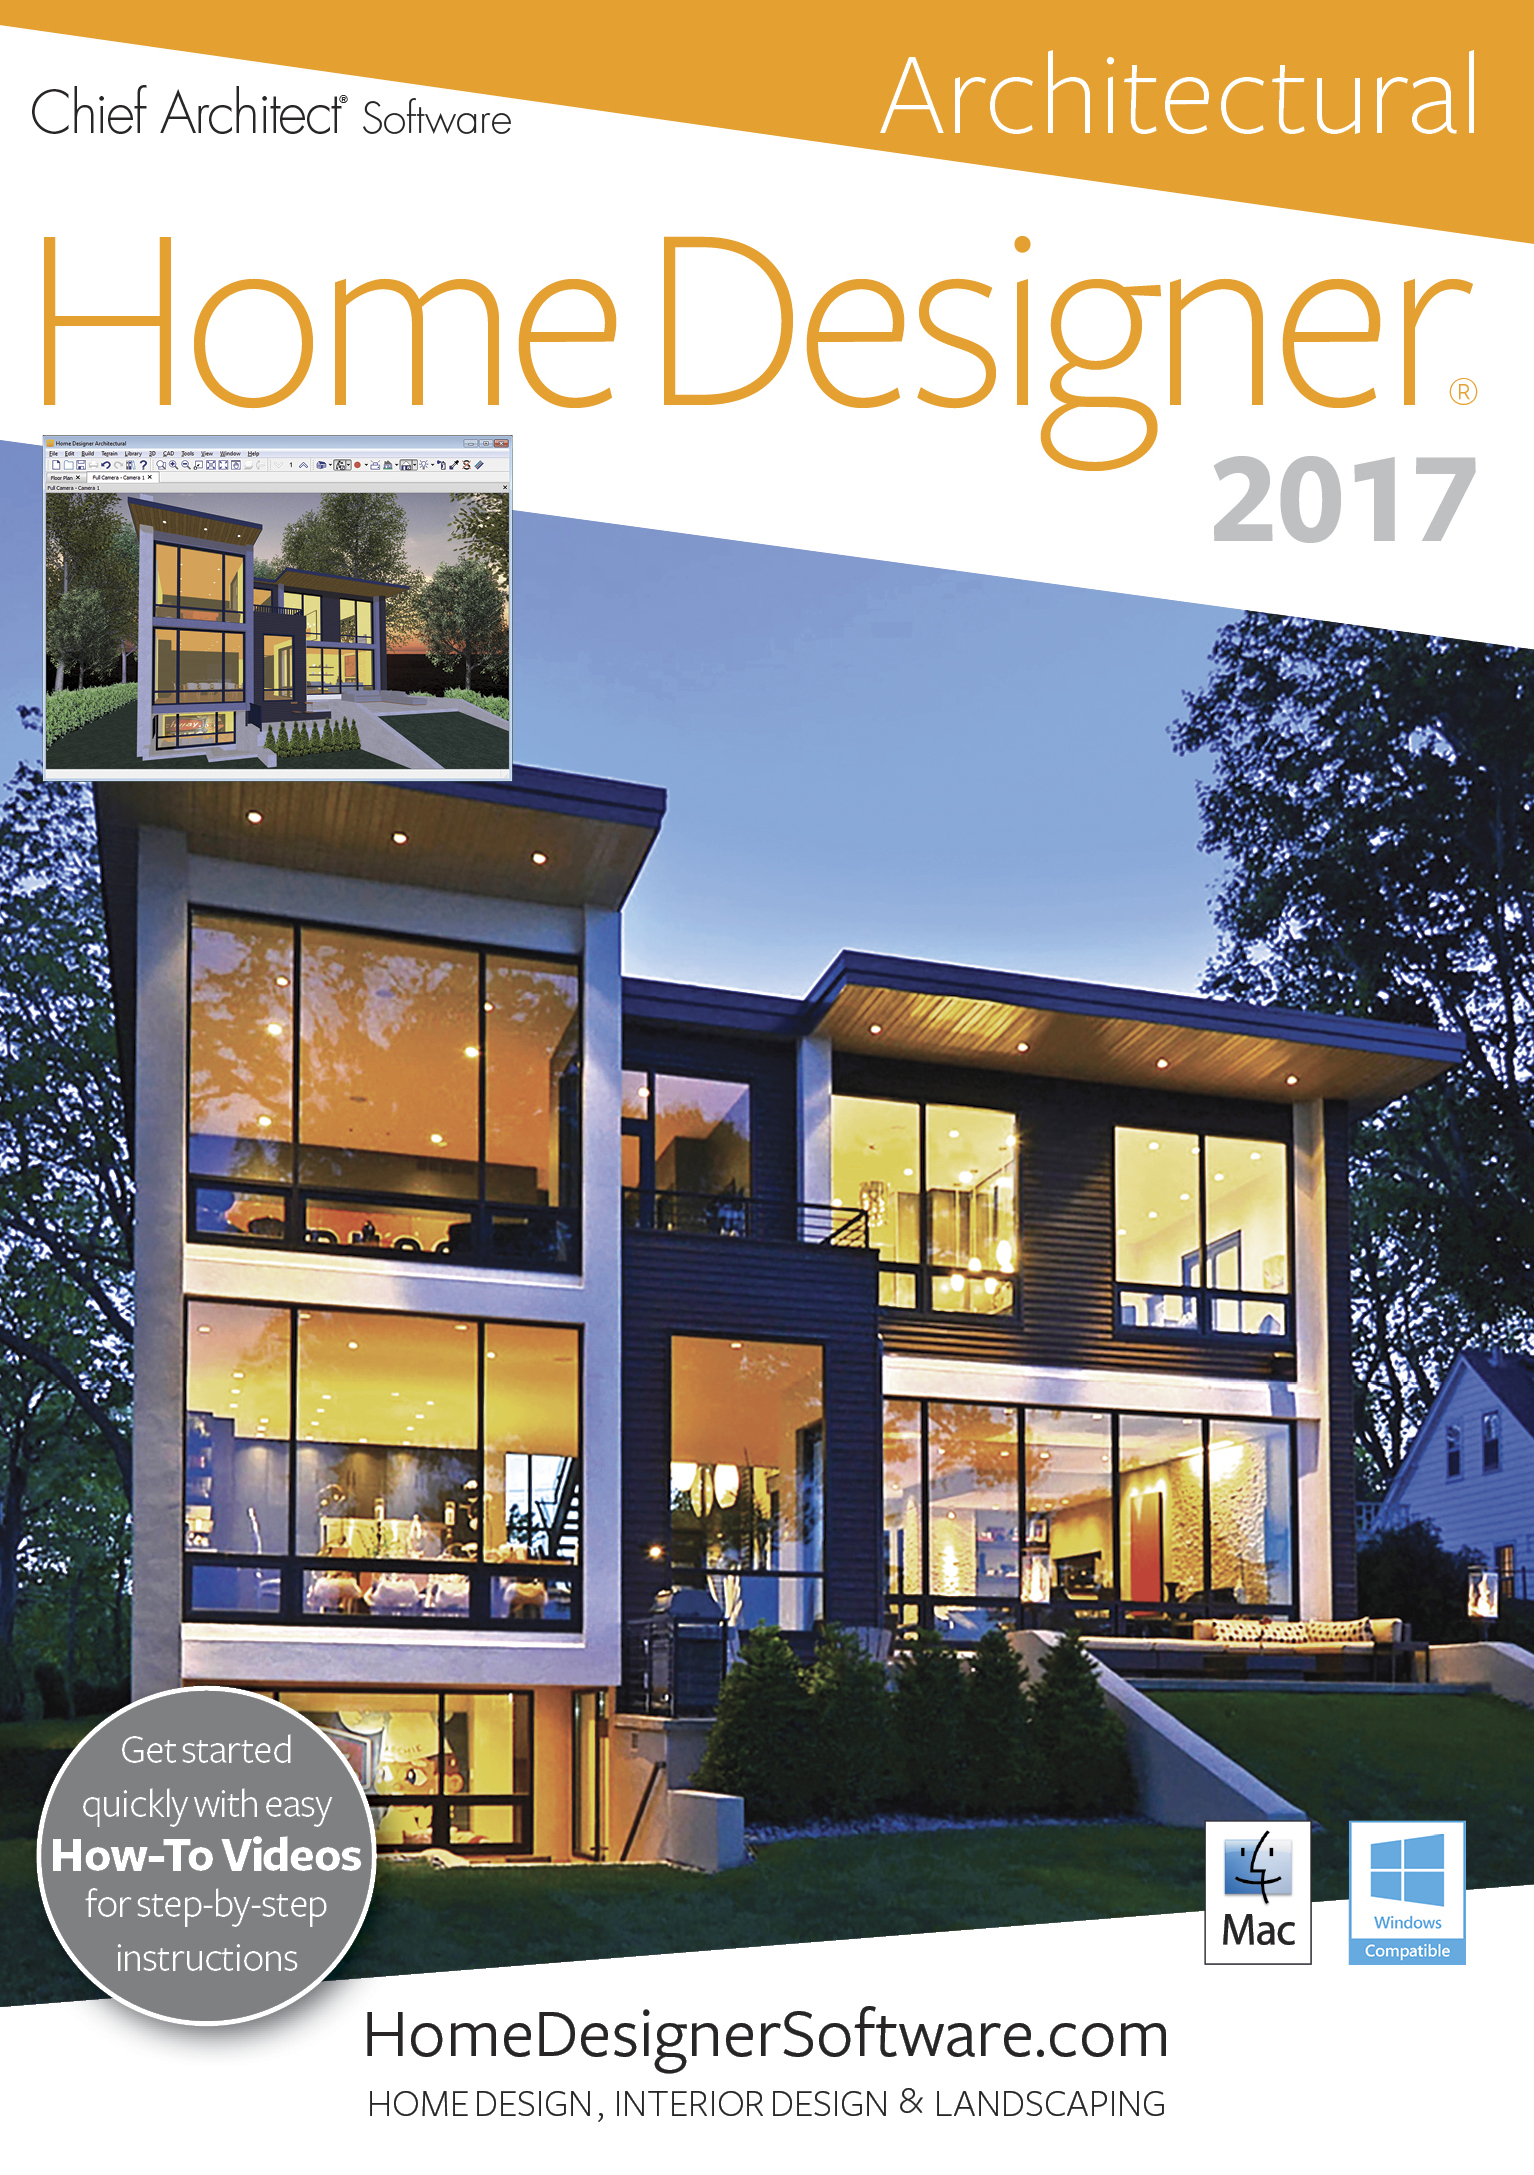 Delightful Amazon.com: Chief Architect Home Designer Architectural 2017 [Download]:  Software